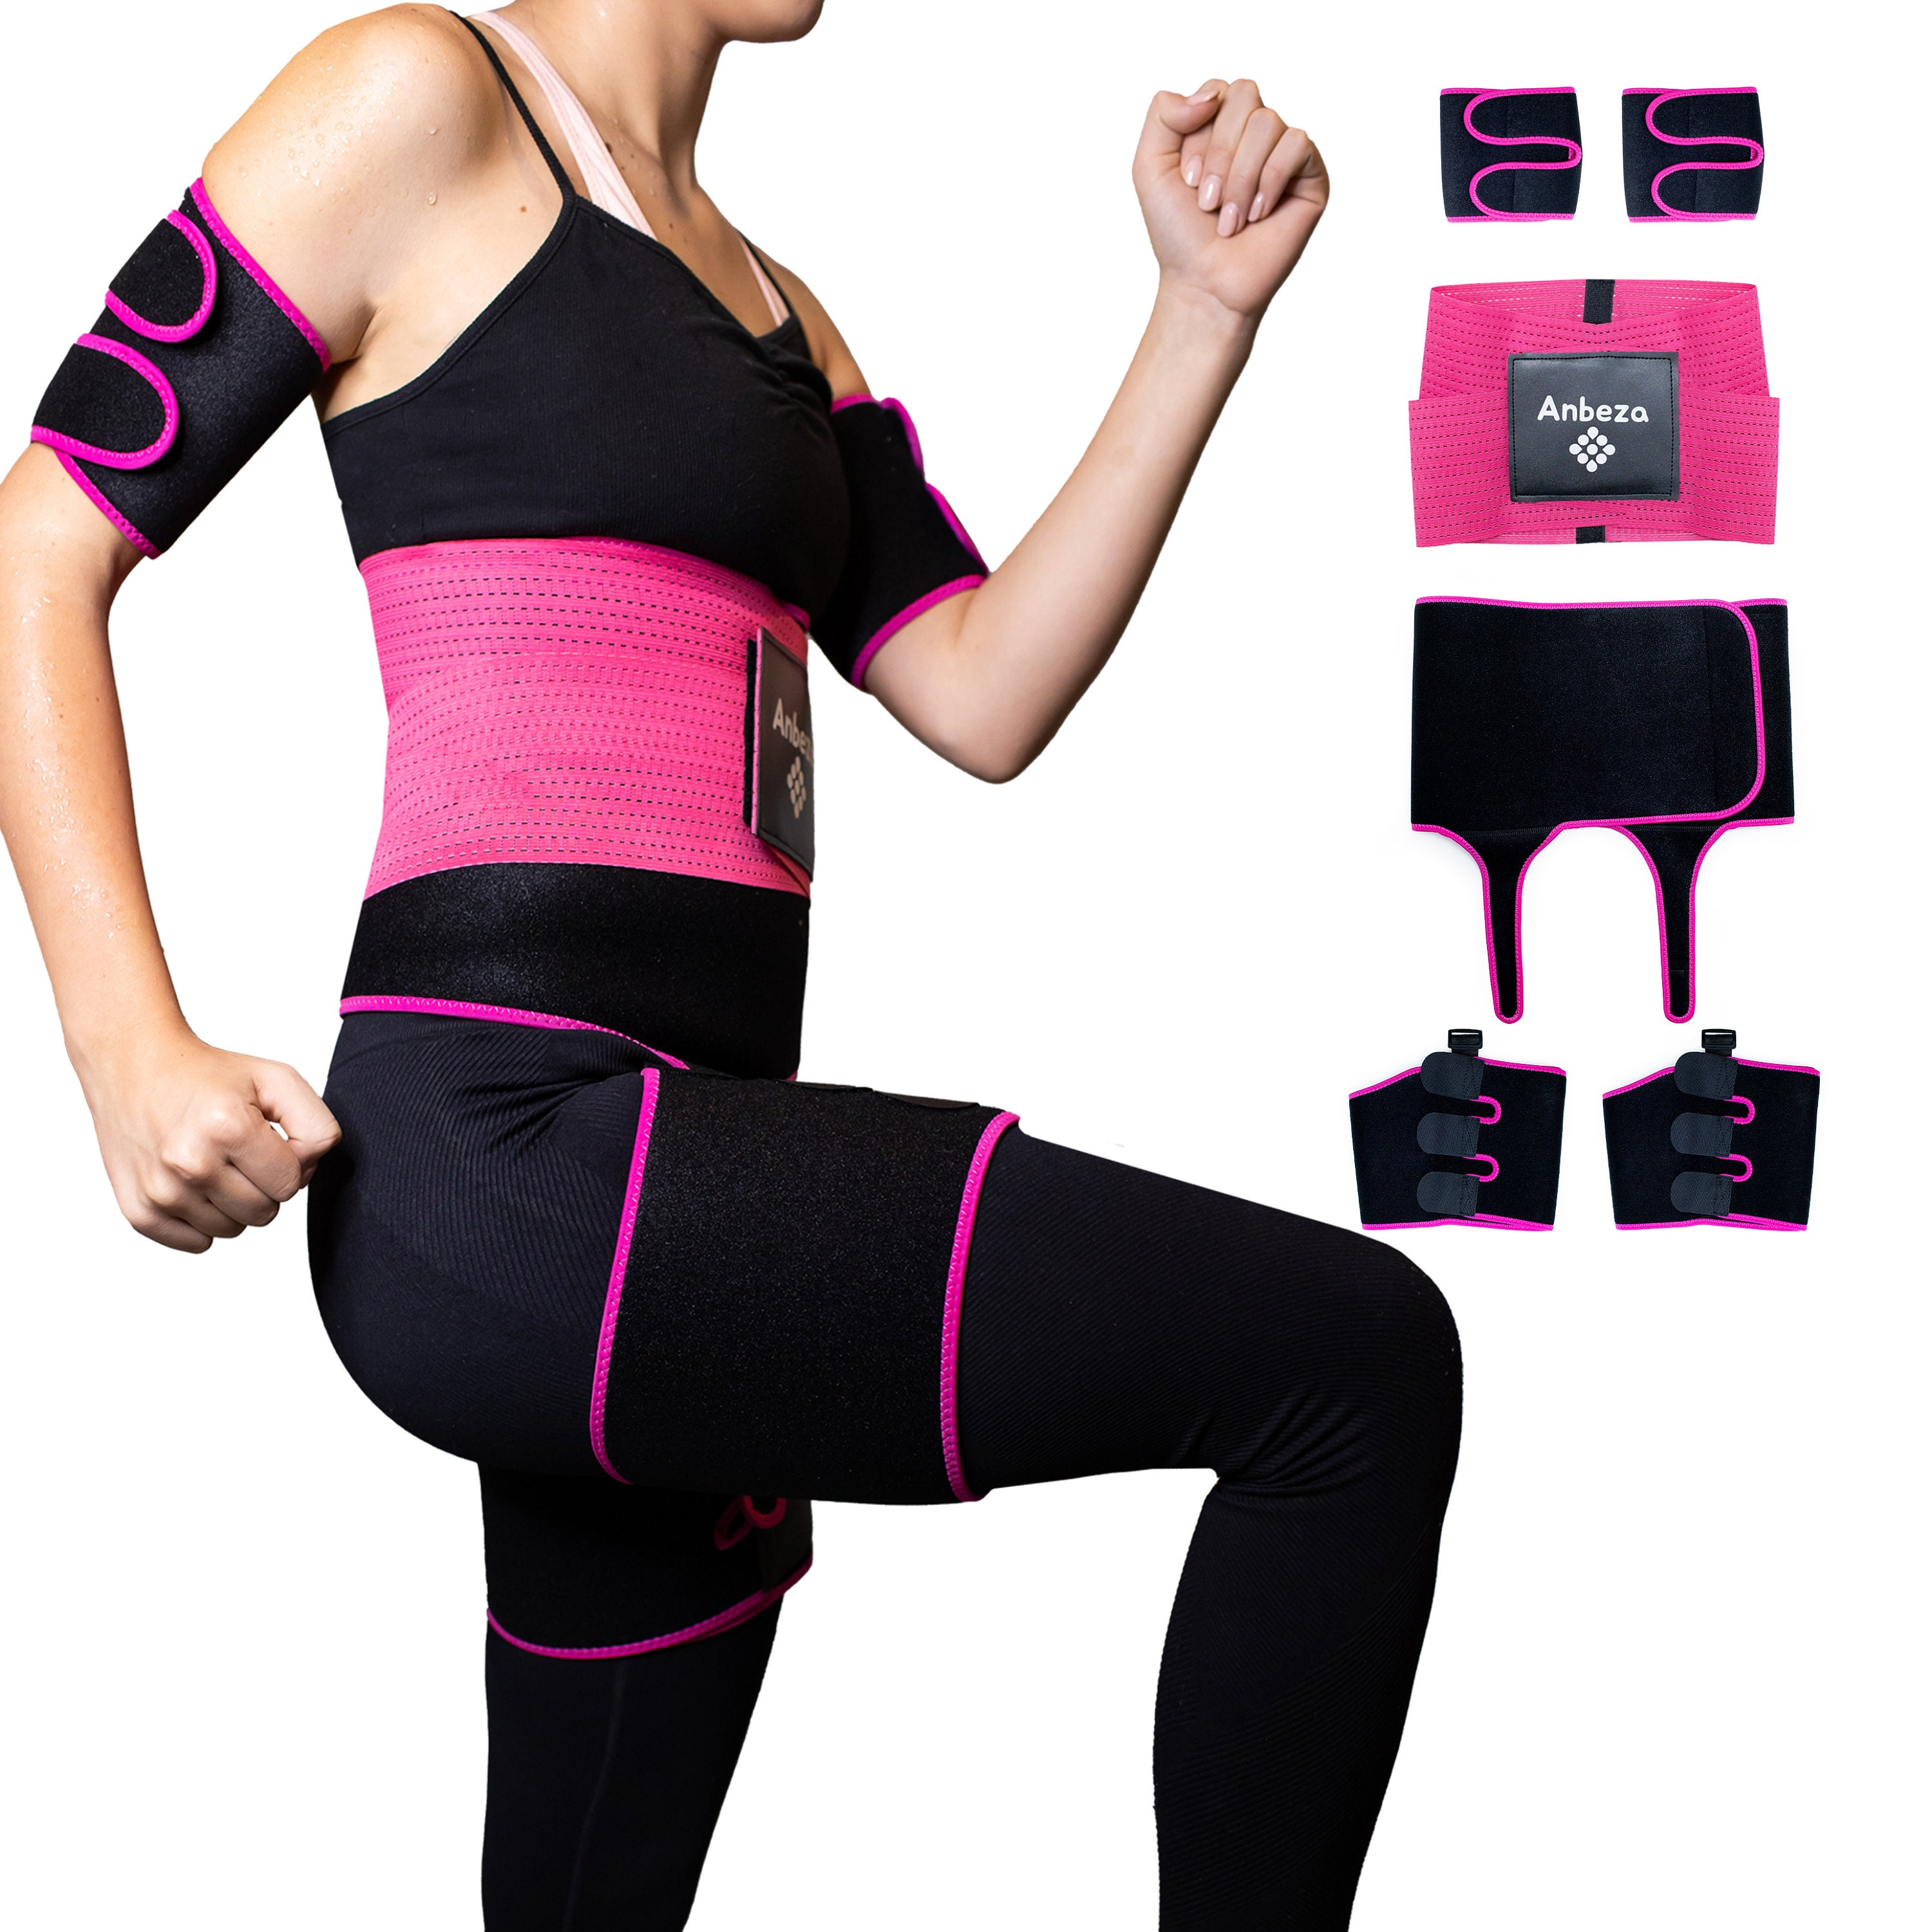 Anbeza 3-in-1 Waist and Thigh Trainer with Butt Lifter and Arm Trimmers for Weight Loss. Thigh Slimmer and Arm Slimmer for Arm Fat